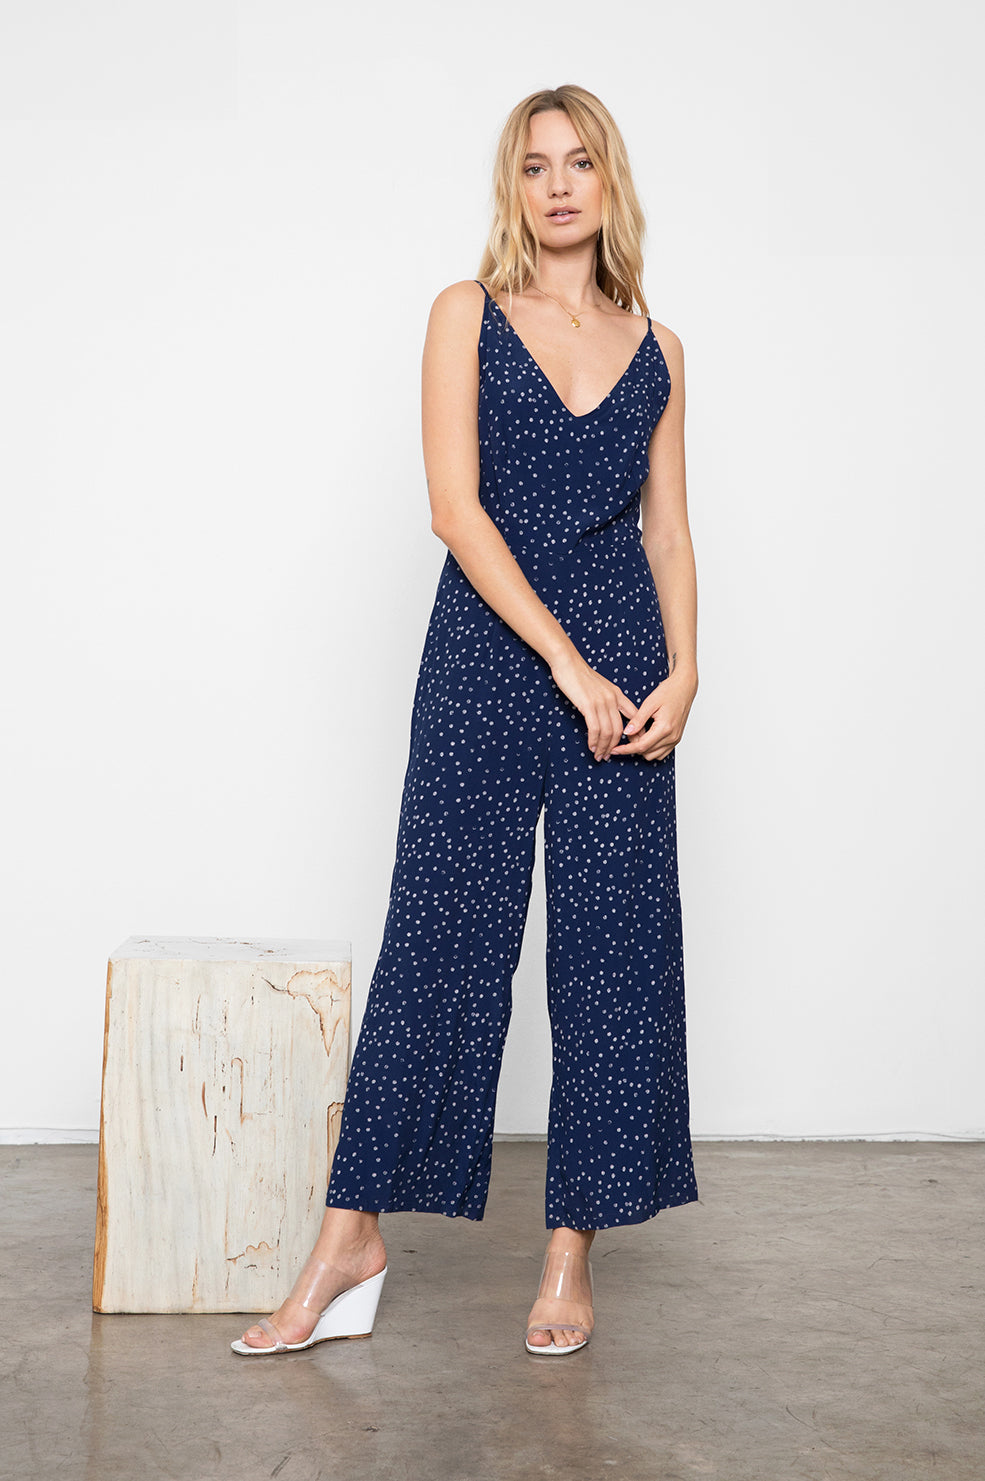 GABRIELLE - NAVY SPECKLED DOT